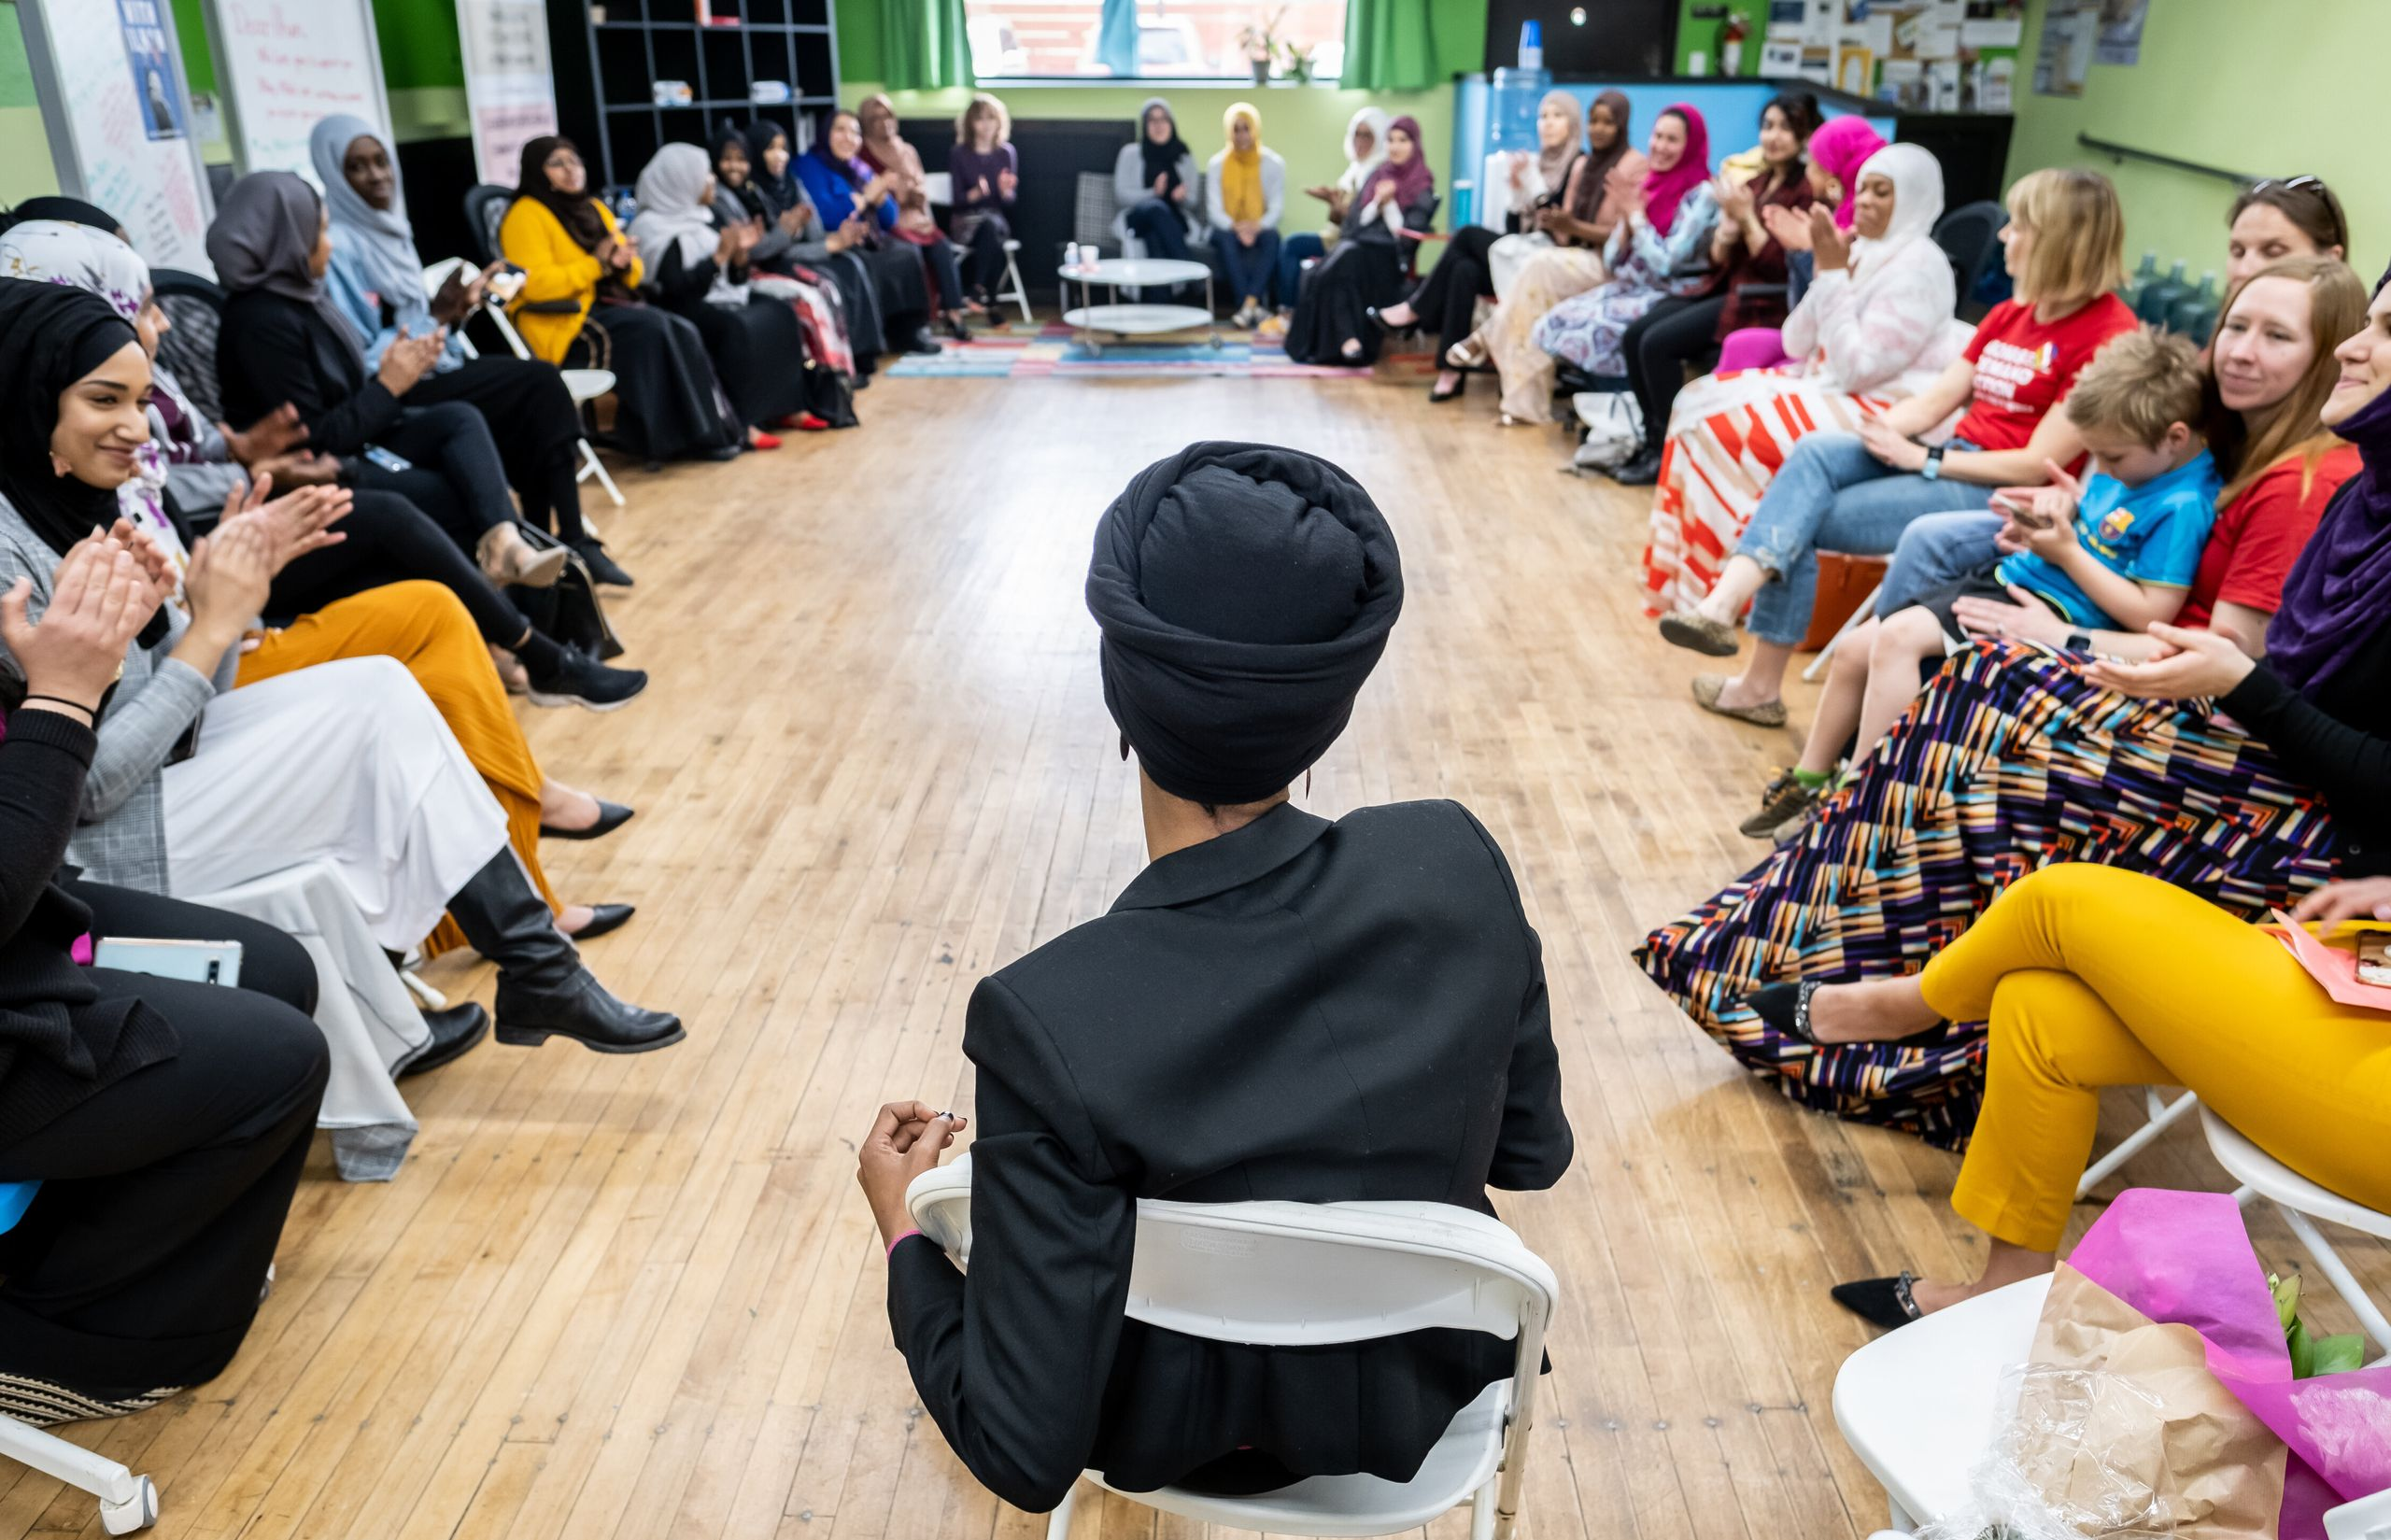 Rep. Ilhan Omar meets with community members at the RISE (Reviving Sisterhood) office in North Minneapolis on April 24, 2019.